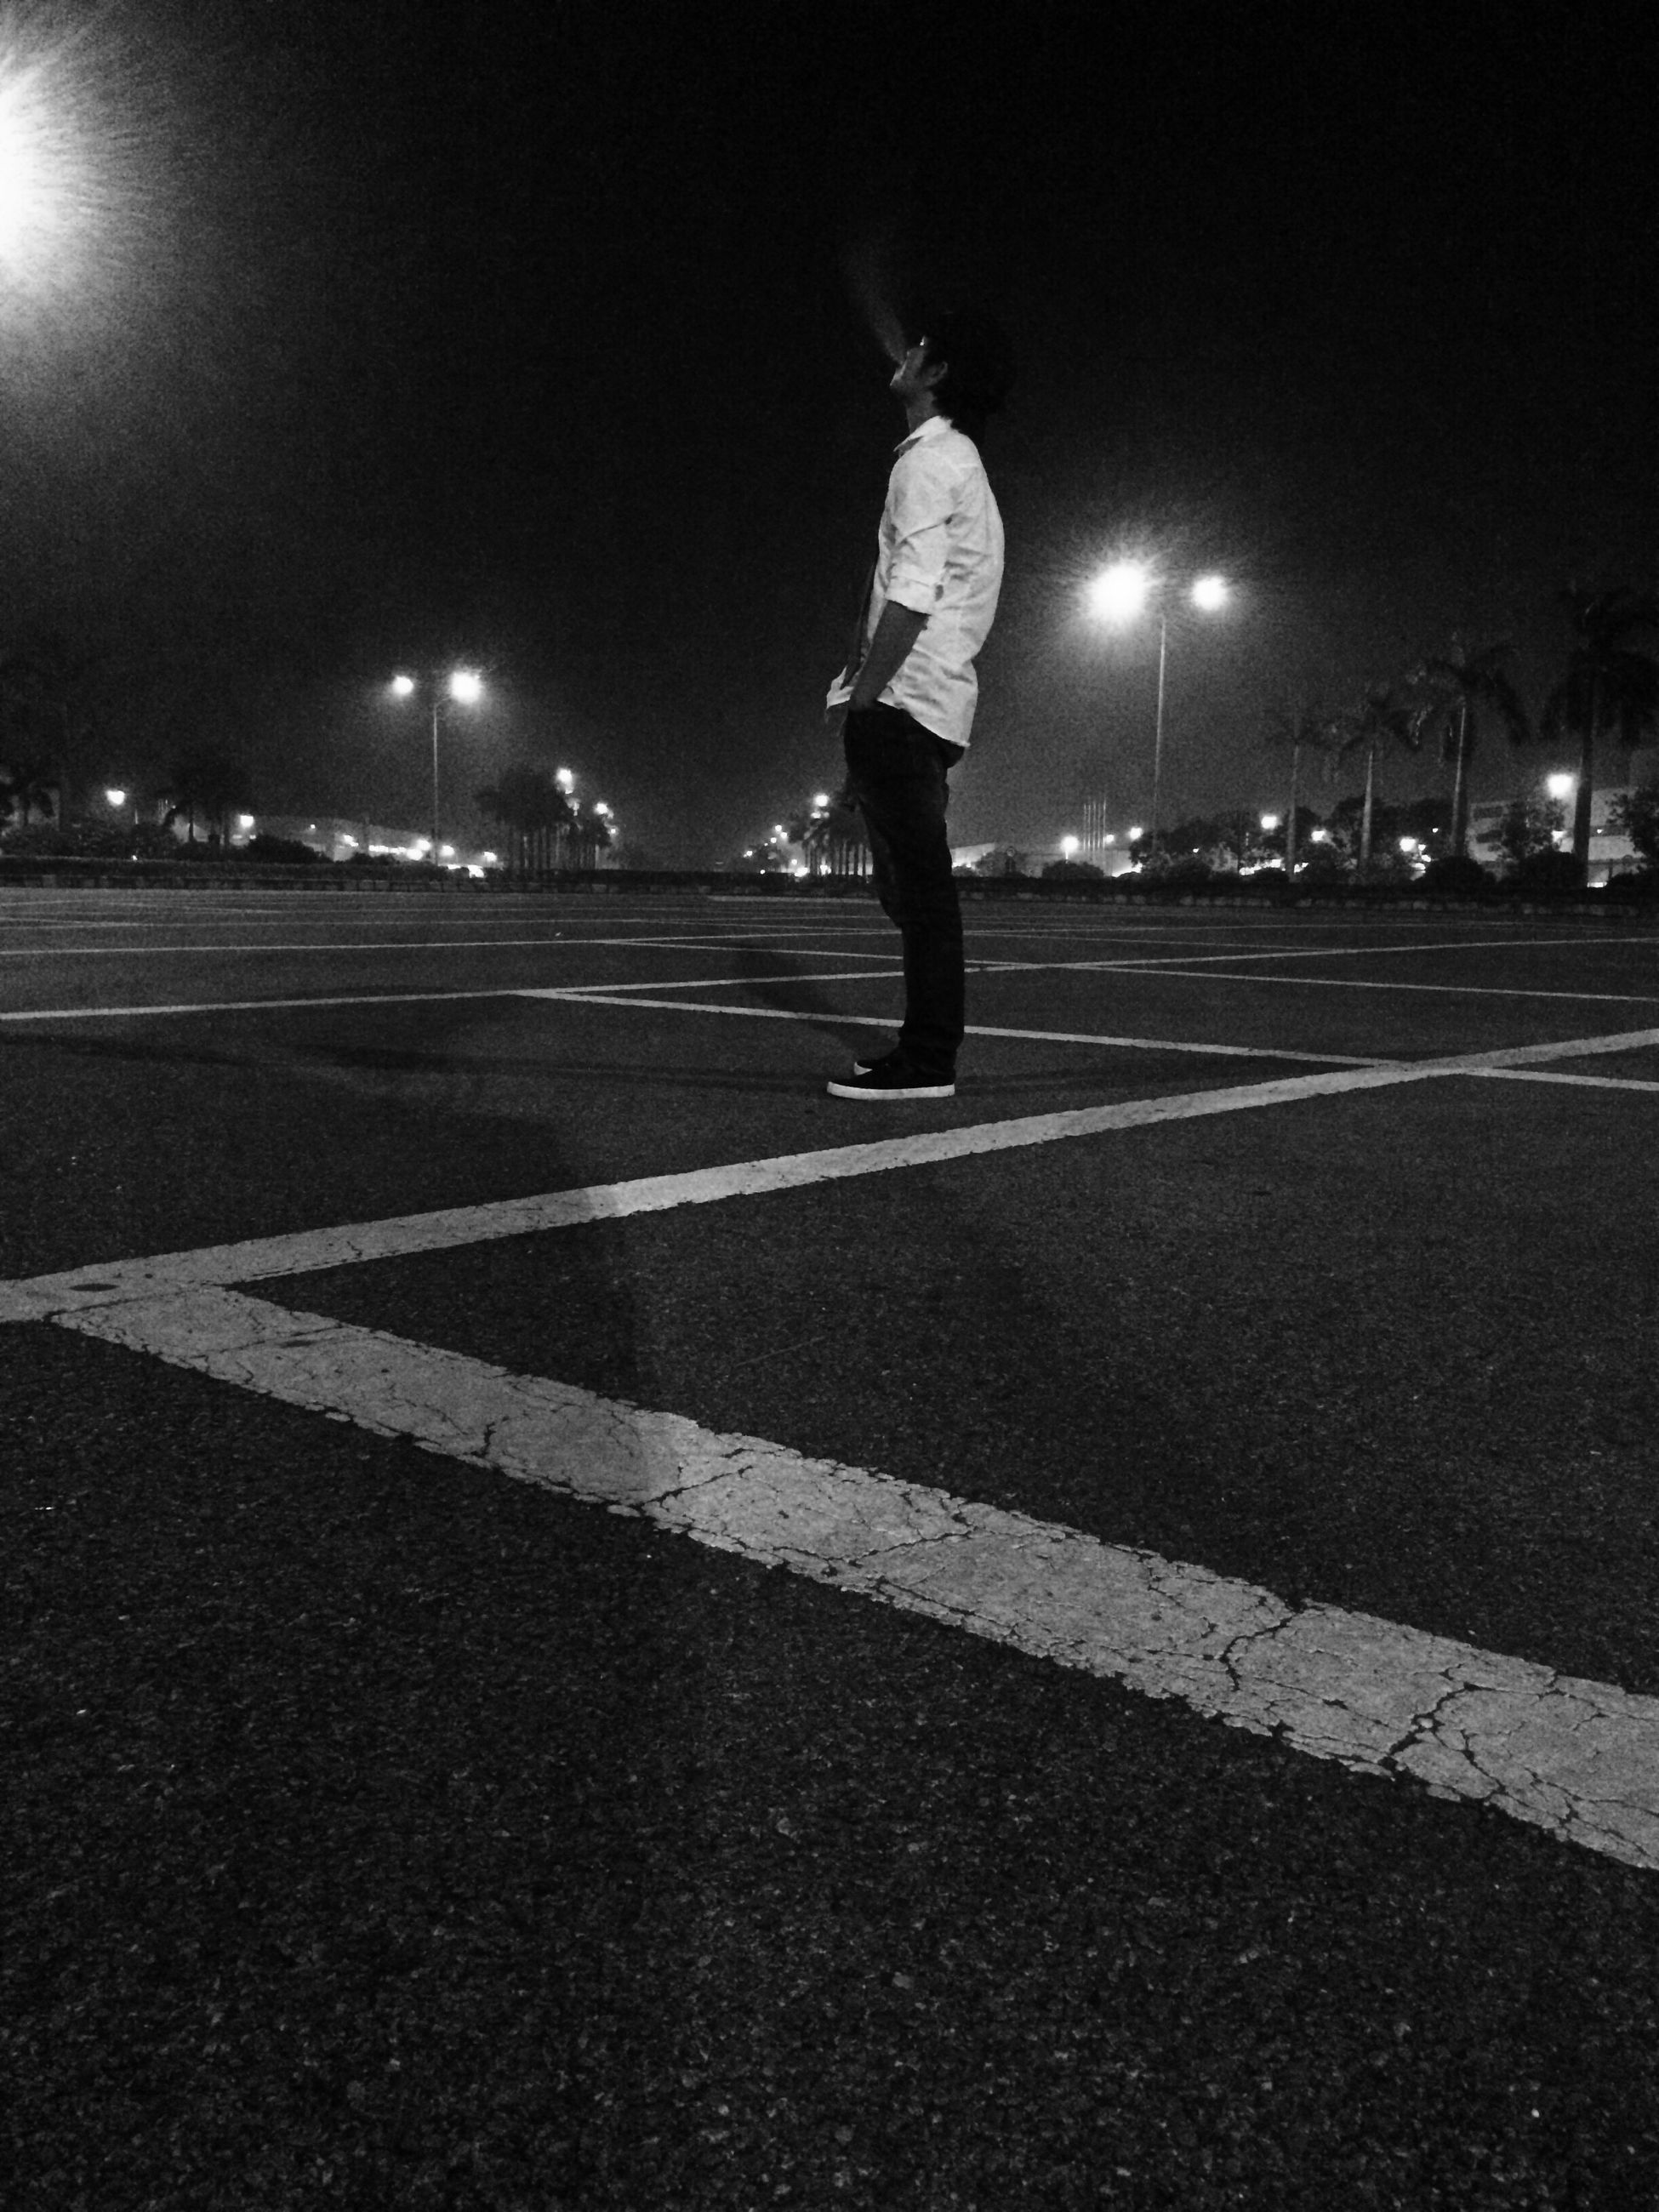 full length, road marking, lifestyles, road, night, street, transportation, leisure activity, skateboarding, motion, on the move, zebra crossing, illuminated, casual clothing, skateboard, outdoors, city, city life, park - man made space, footpath